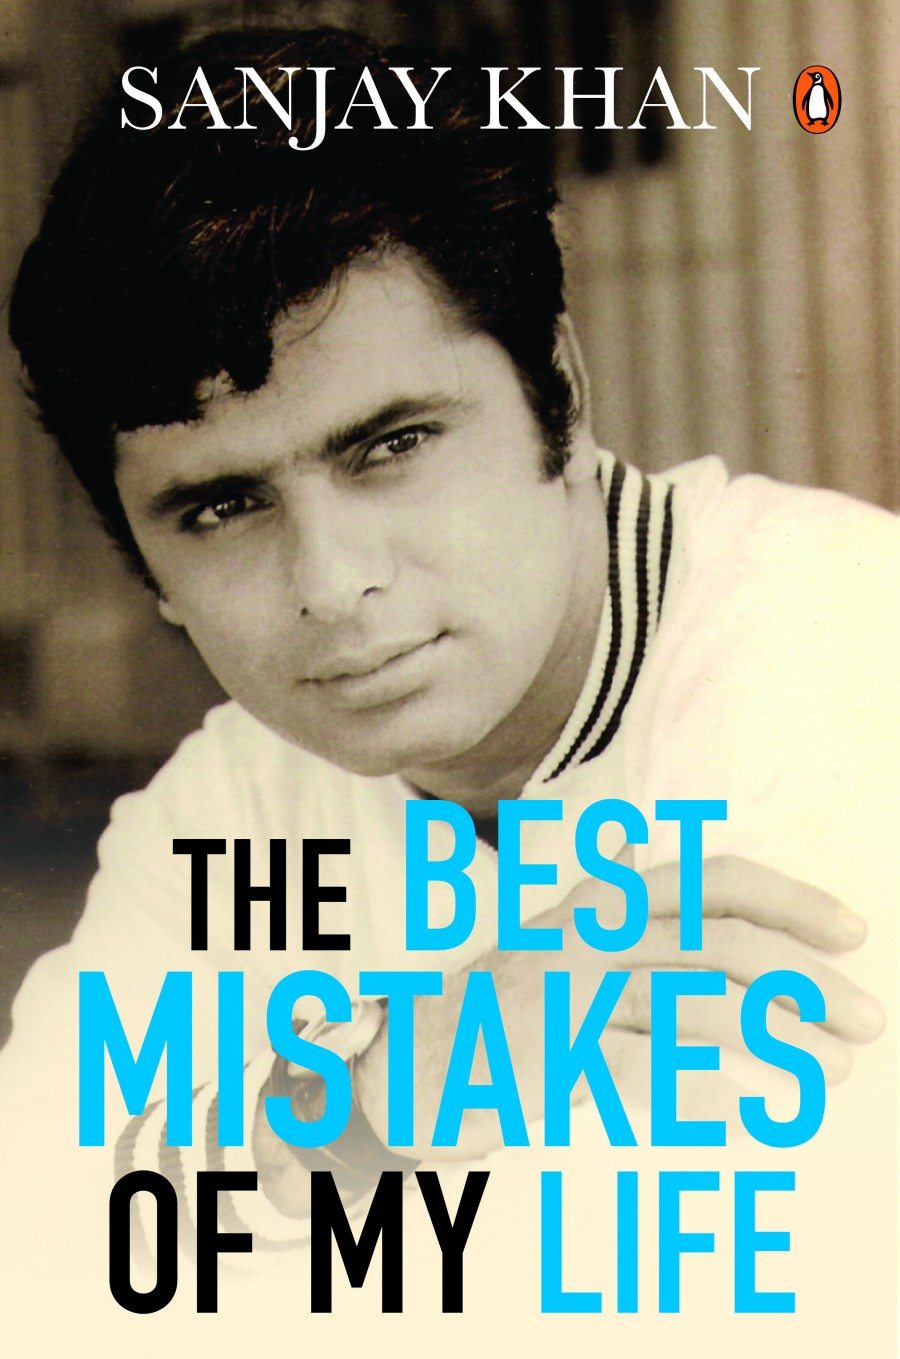 Hrithik Roshan,Sanjay Khan,Sanjay Khan autobiography first look,Sanjay Khan autobiography,The Best Mistakes of My Life,The Best Mistakes of My Life first look,The Best Mistakes of My Life poster,The Best Mistakes of My Life movie poster